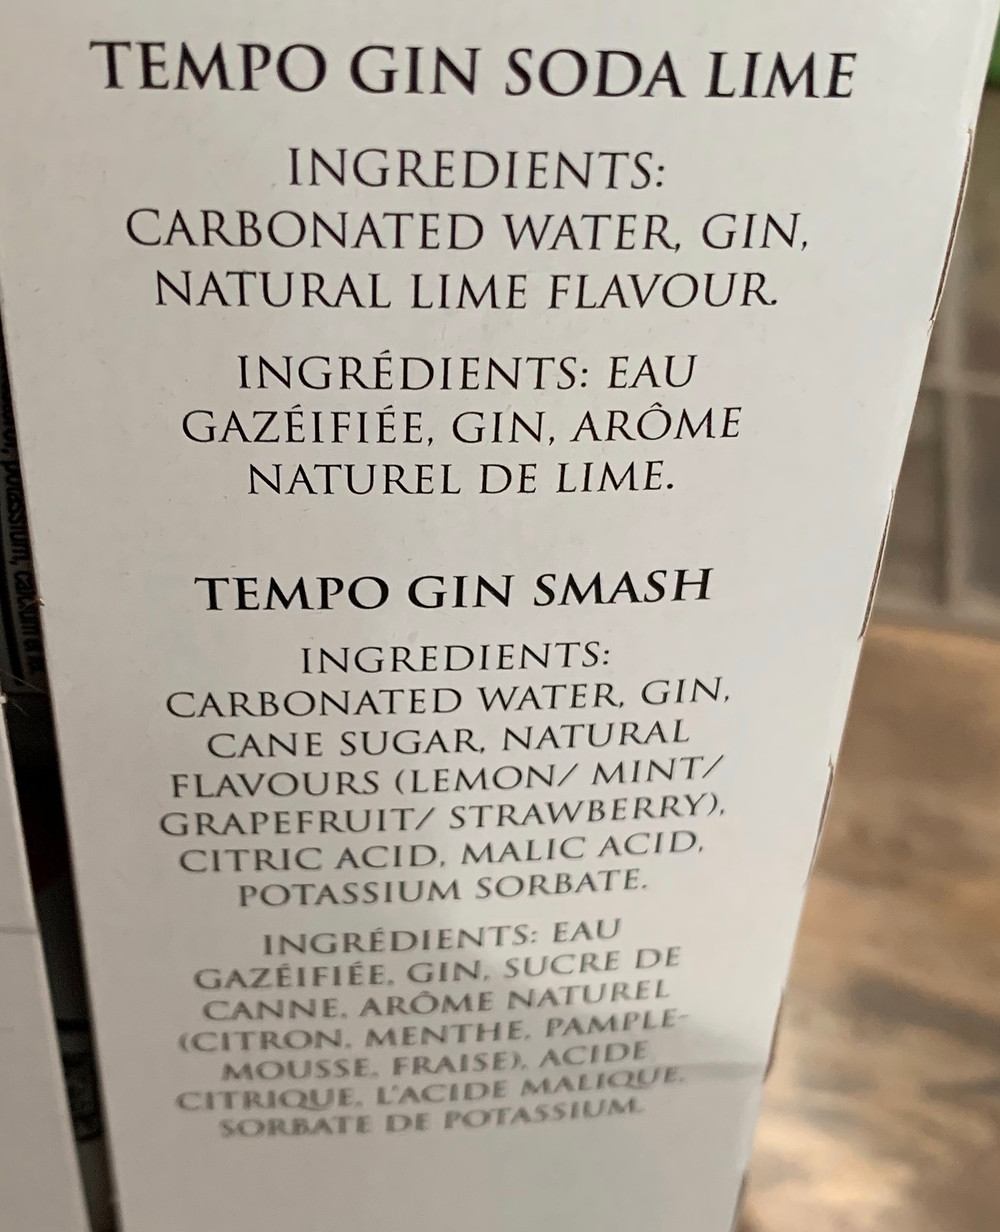 Costco Tempo Gin Smash Pack Ingredients